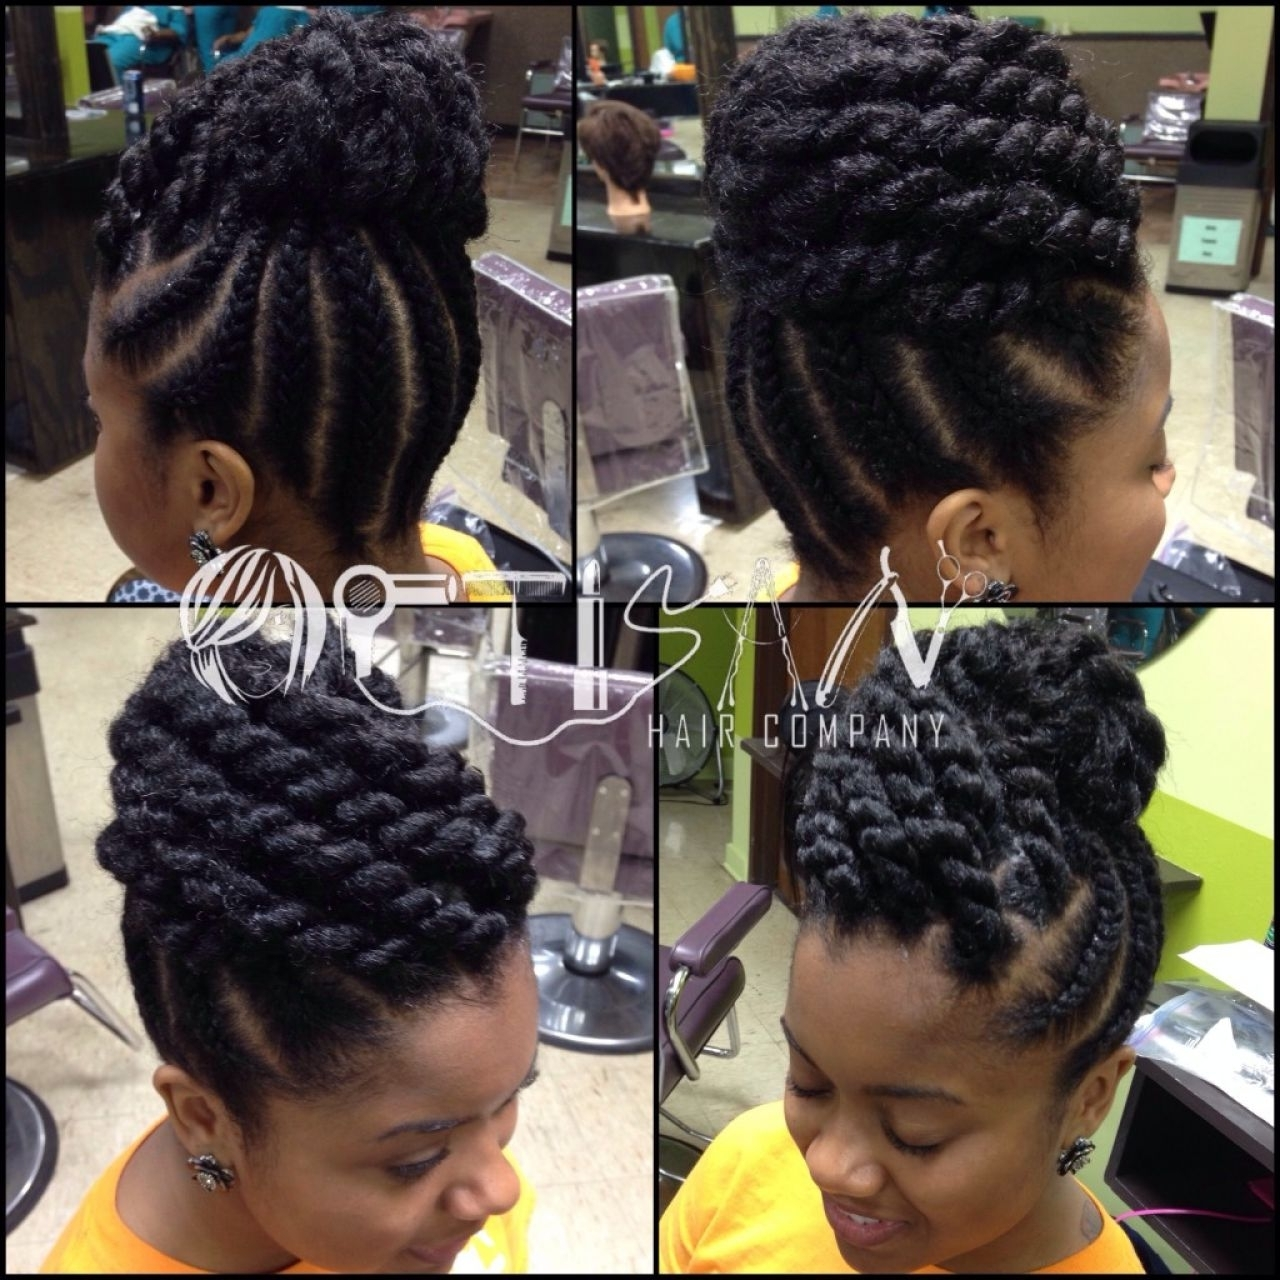 Don't Know What To Do With Your Hair: Check Out This Trendy Ghana Regarding Braided Updo Black Hairstyles (View 8 of 15)